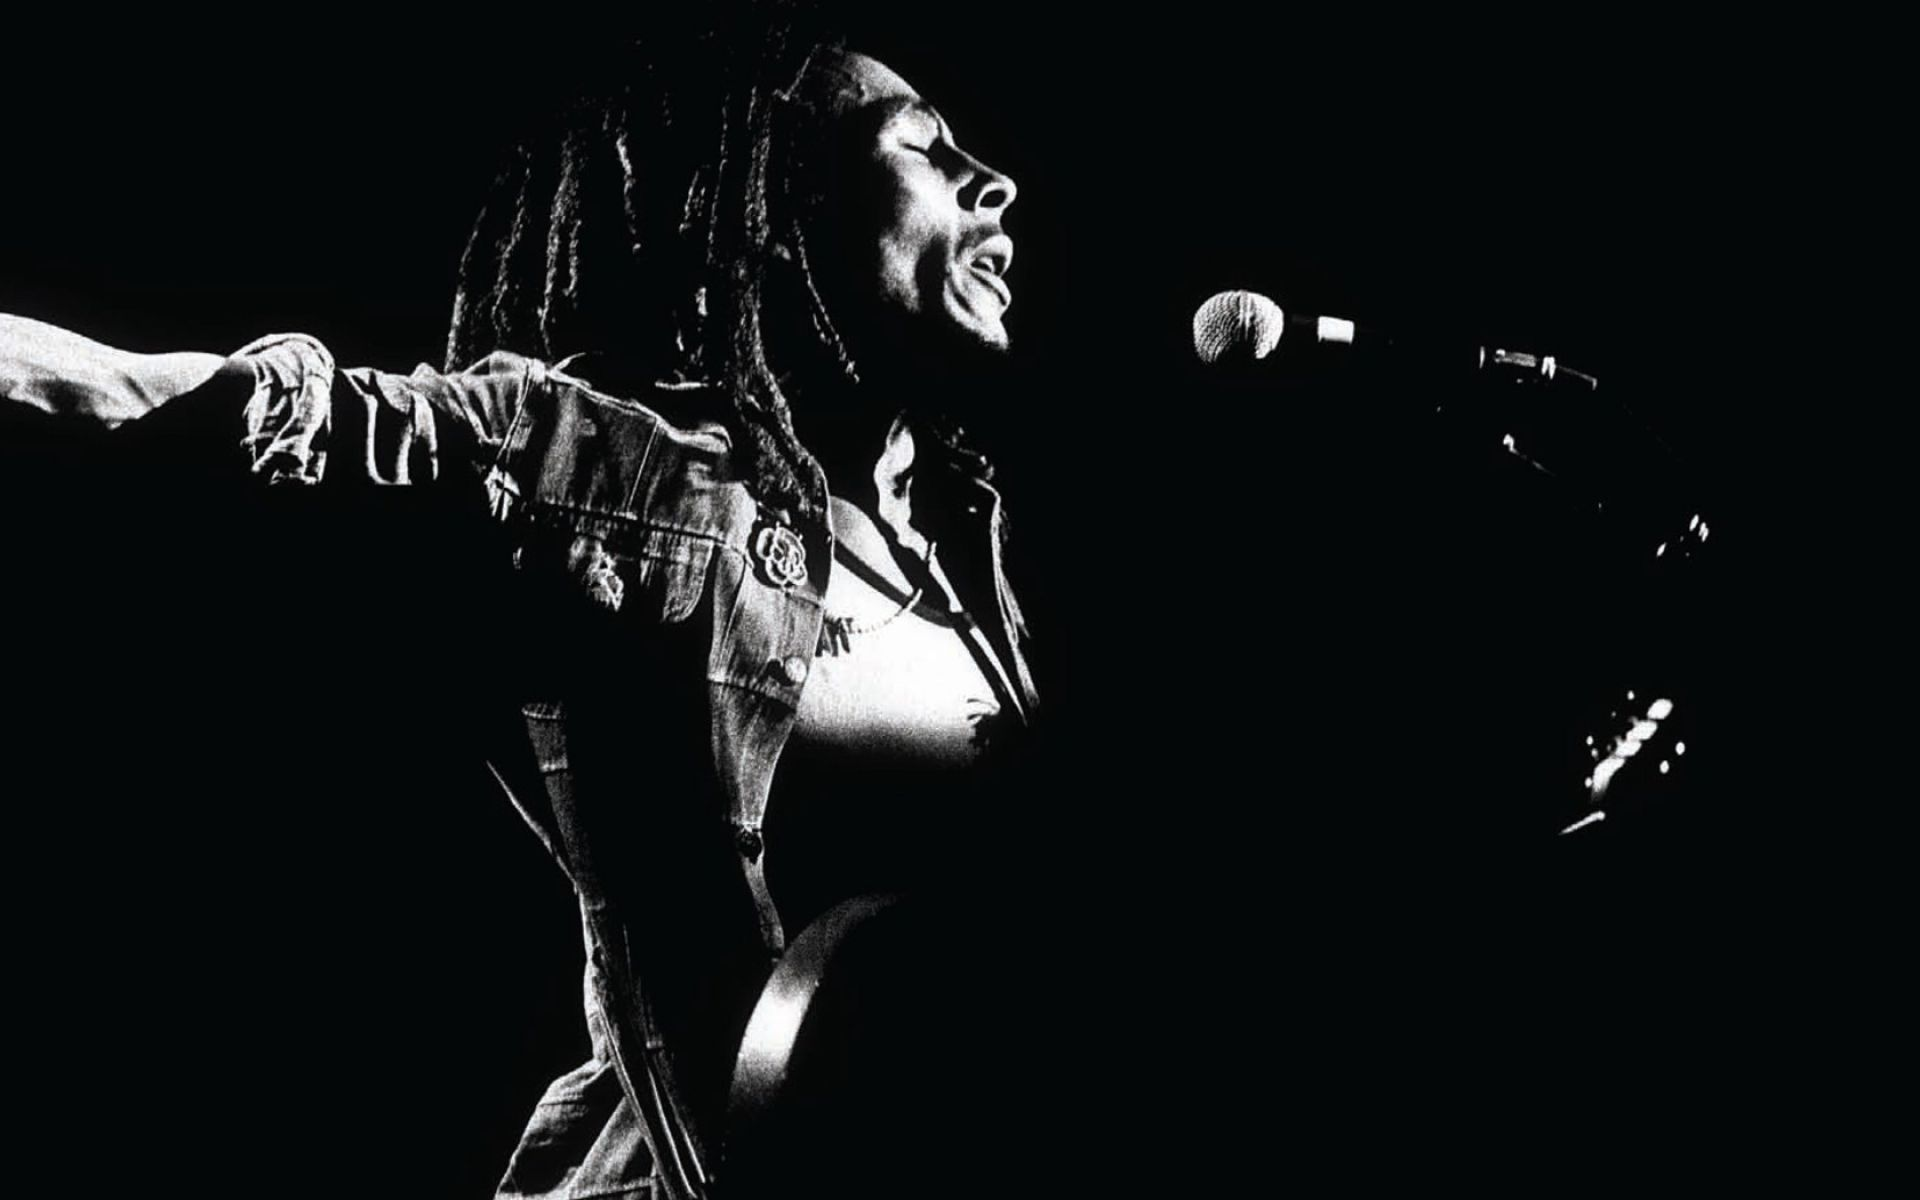 Download bob marley black and white wallpaper gallery - Rasta bob live wallpaper free download ...